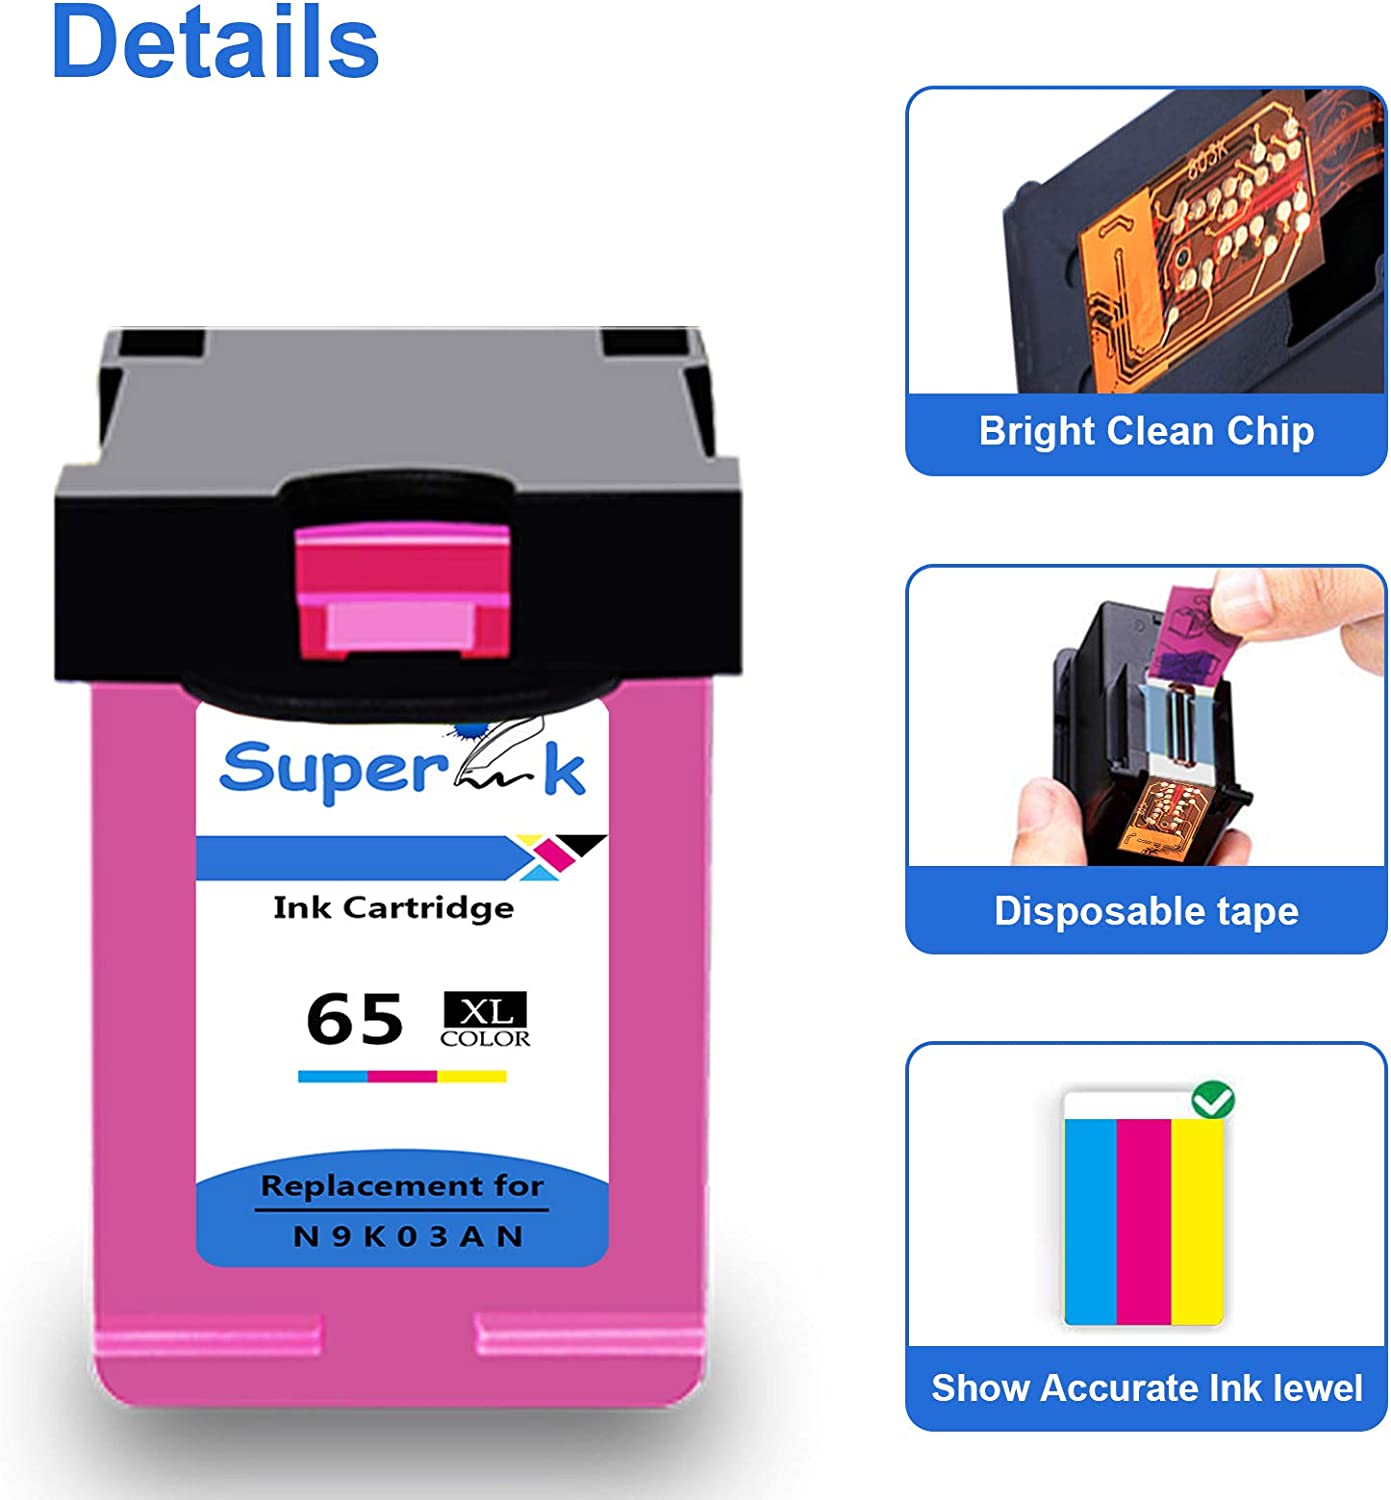 SuperInk 3 Pack High Yield Compatible for HP 65 65XL 65 XL Tri-Color Ink Cartridge N9K03AN with New Chip Use in Envy 5052 5055 5058 DeskJet 2622 2655 2624 3720 3752 3721 3755 3722 3758 Printer